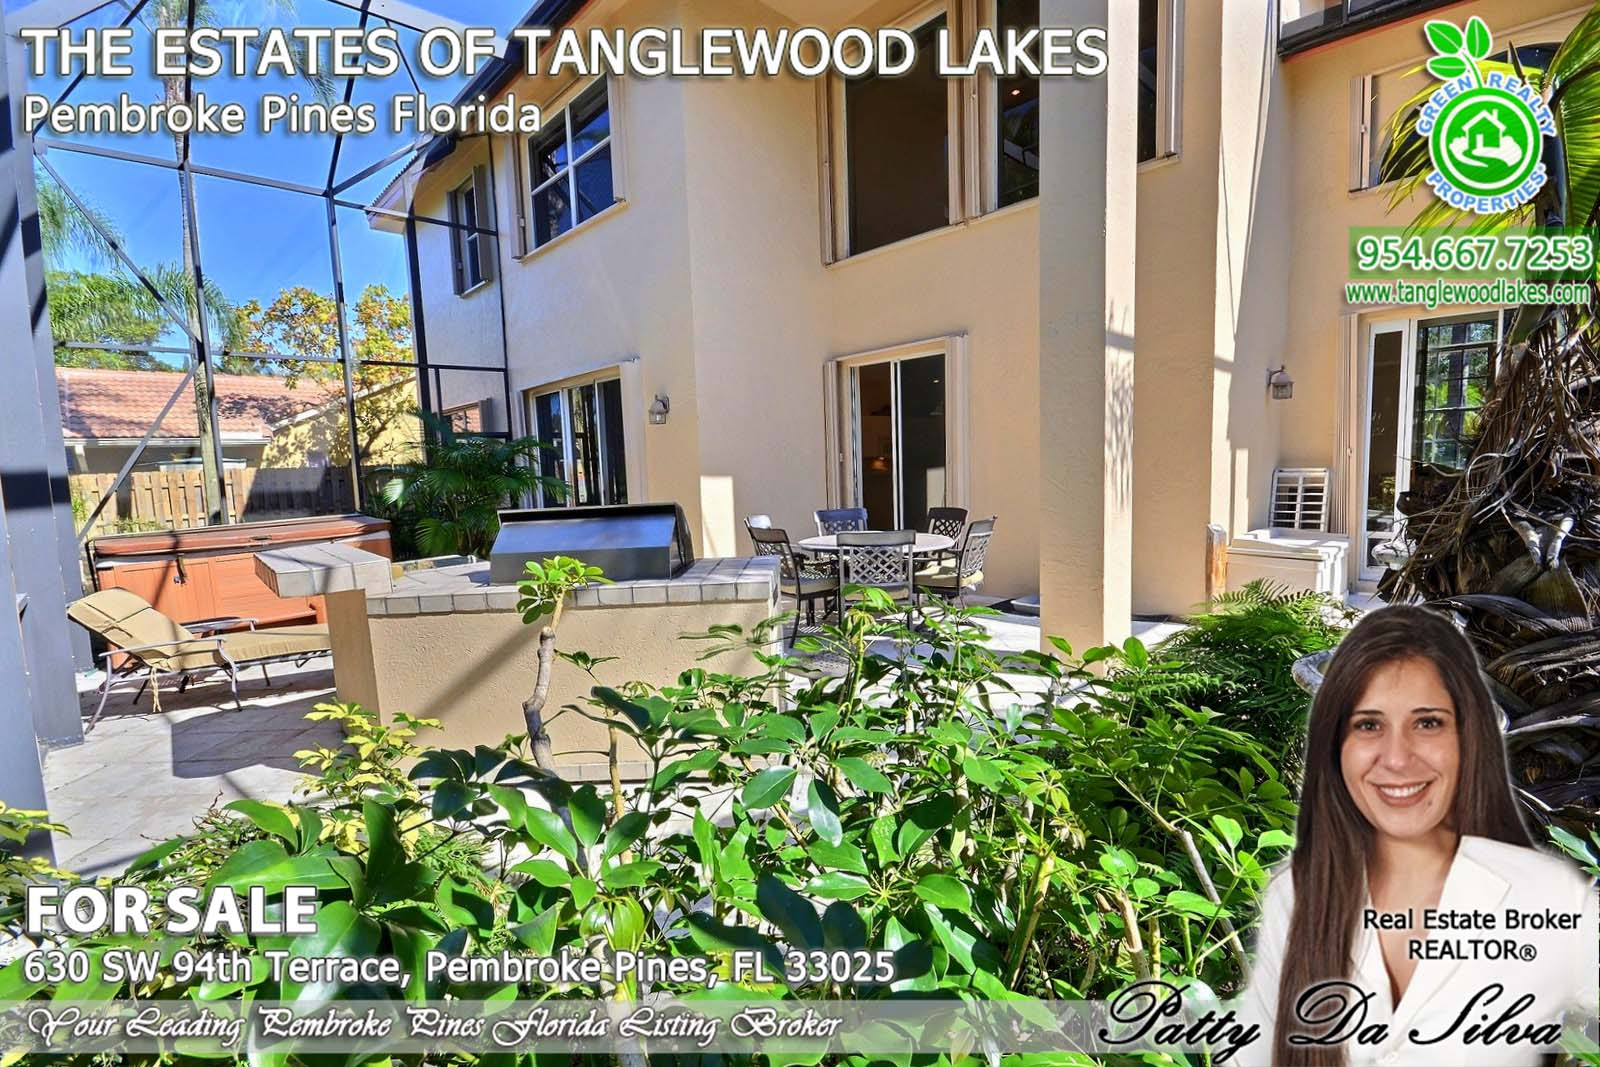 The Estates of Tanglewood Lakes brokerage